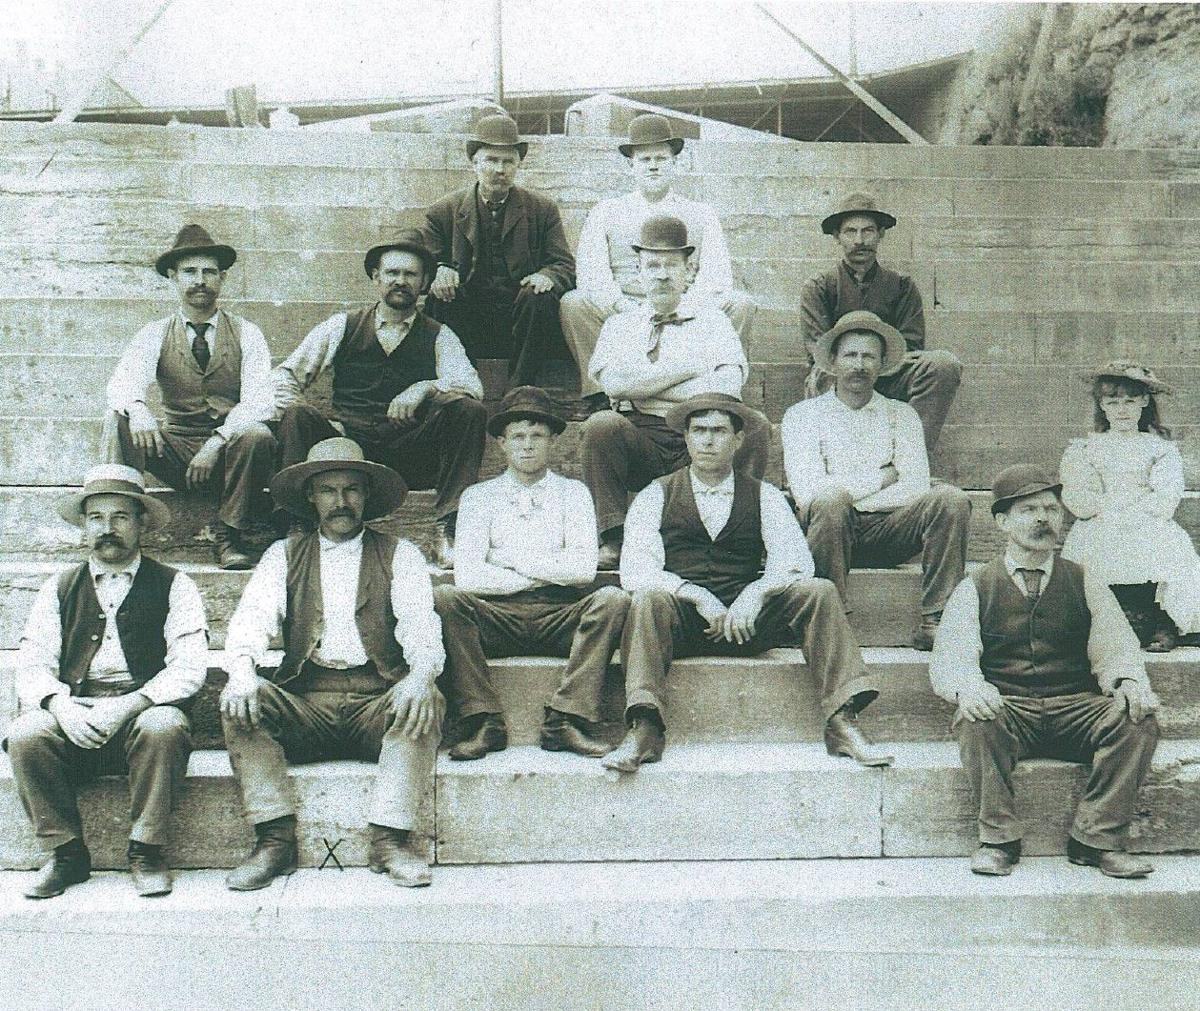 Lockport lock canal workers 1897